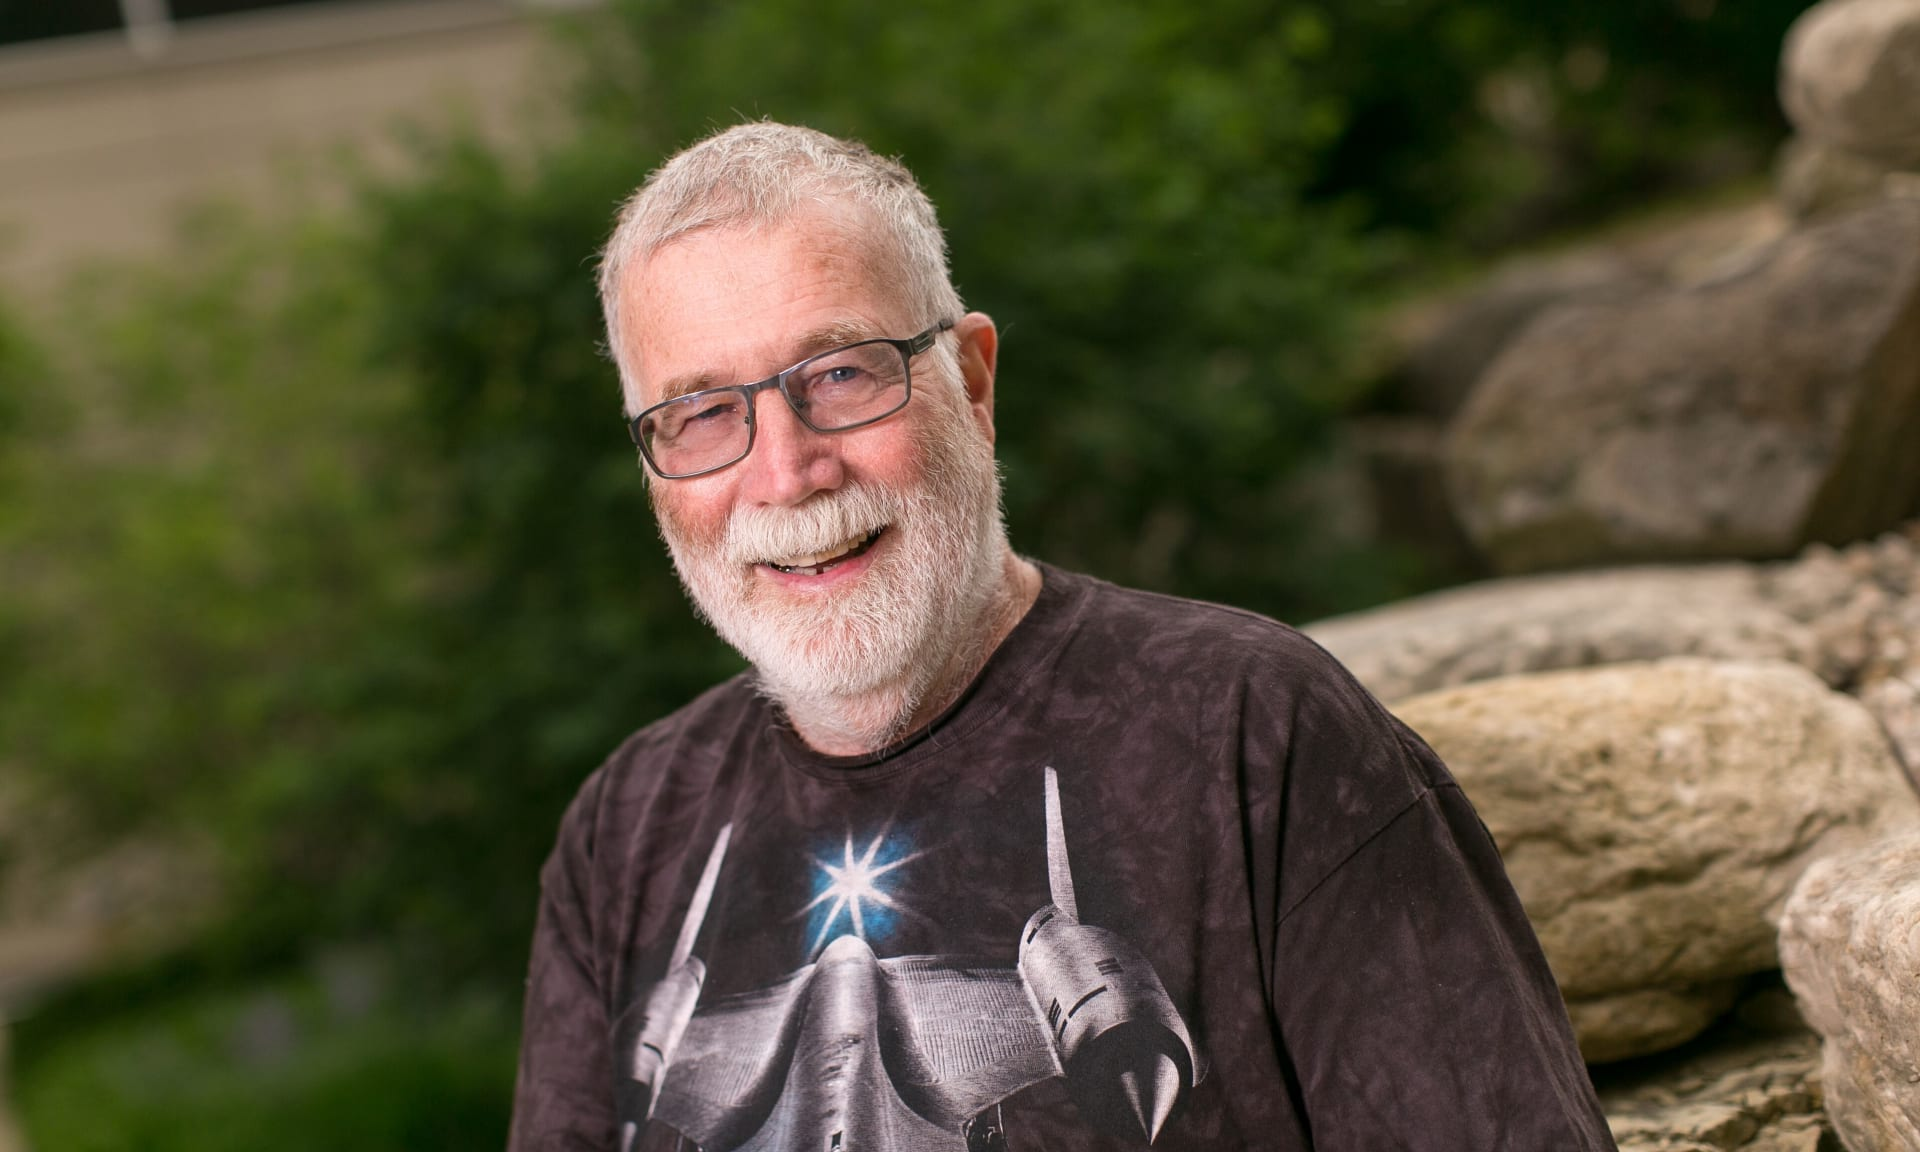 Bearded man outdoors smiling